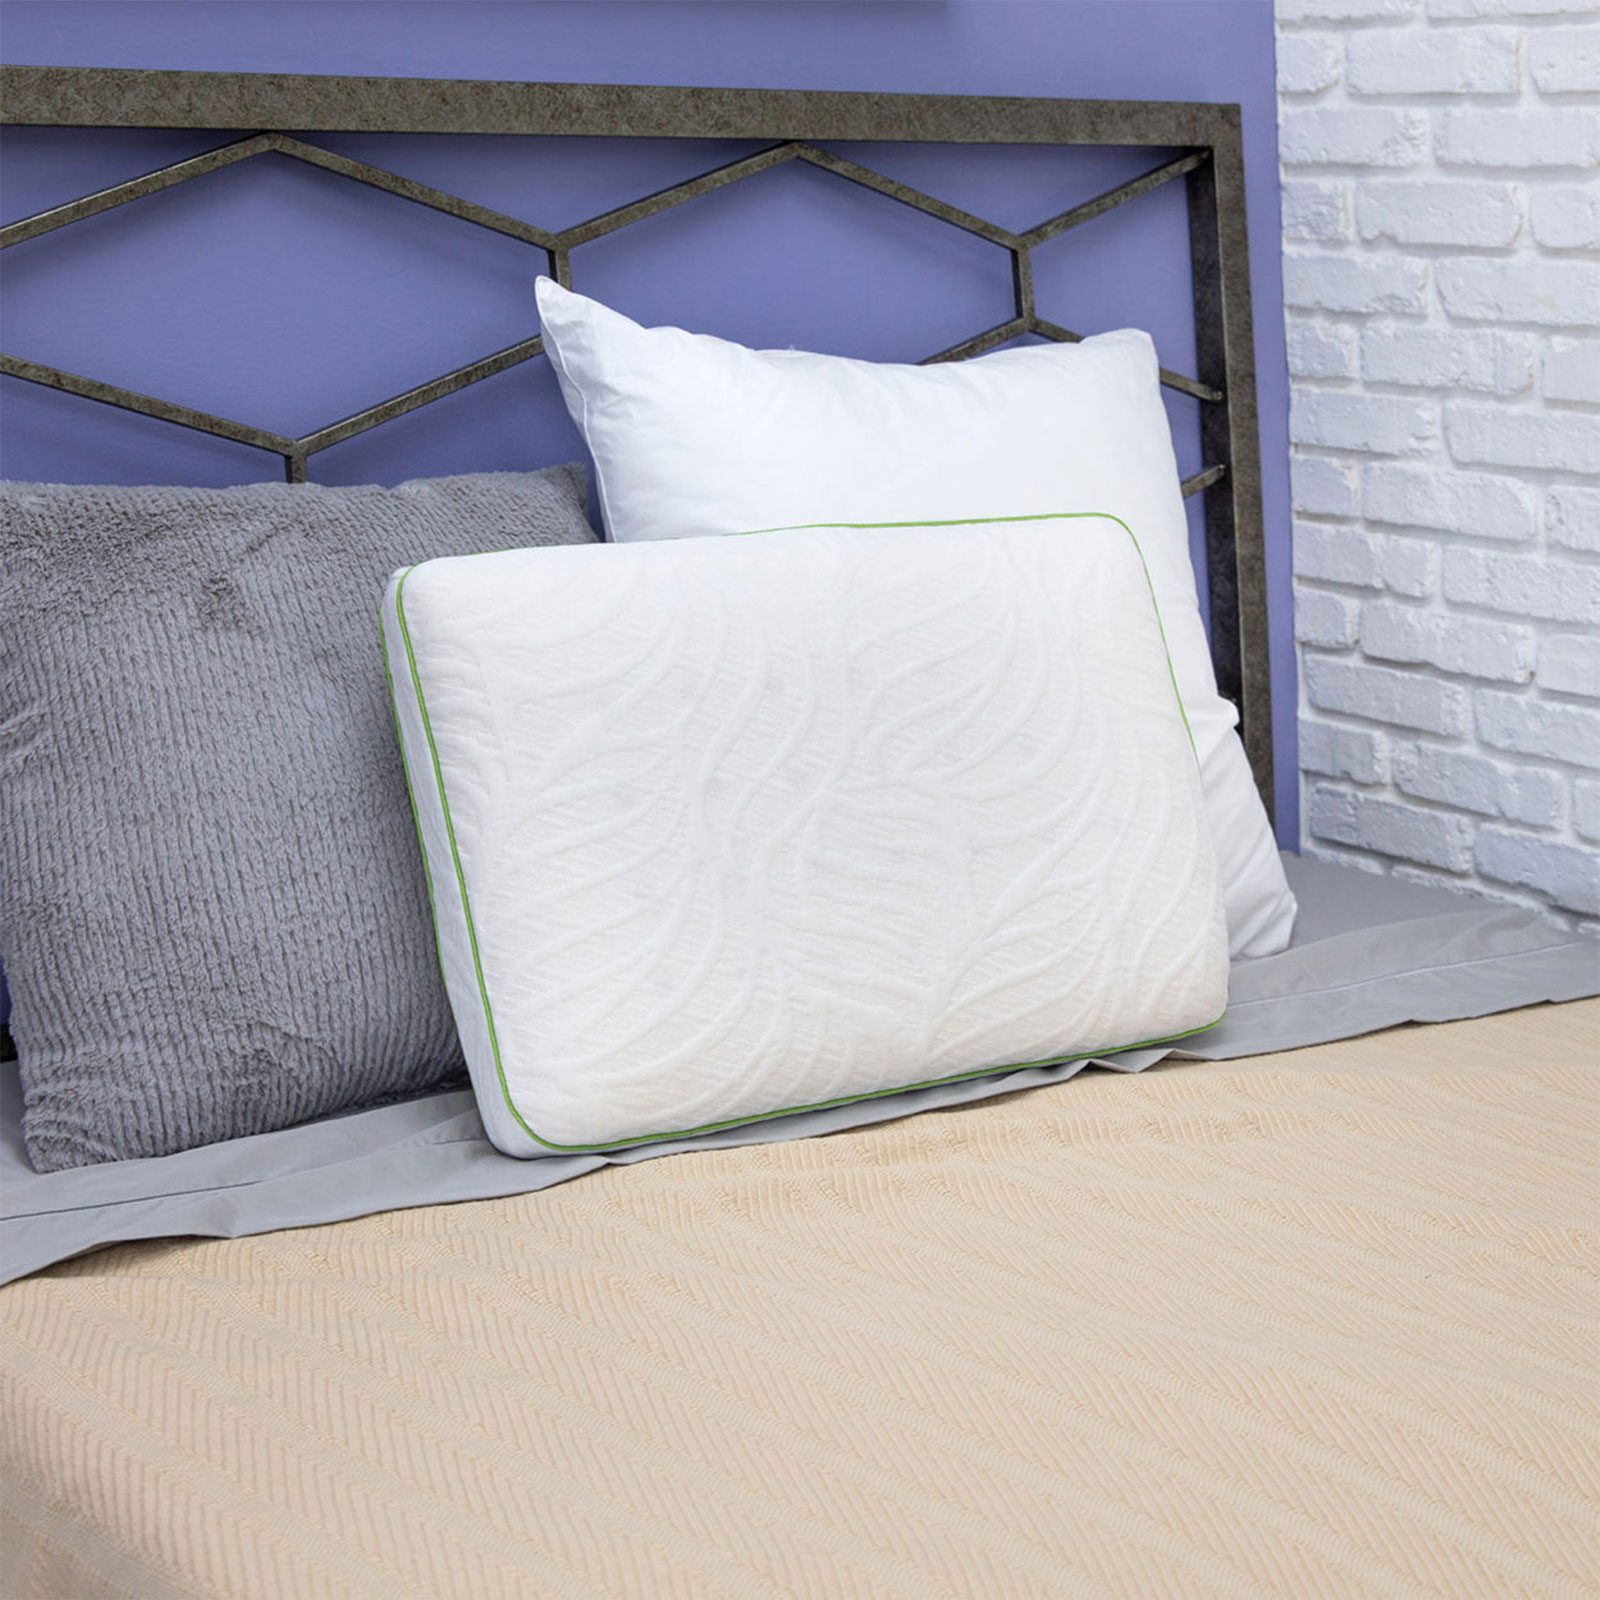 For a bed that feels like an escape: SensorPEDIC Chamomile Scented CBD Memory Foam Bed Pillow